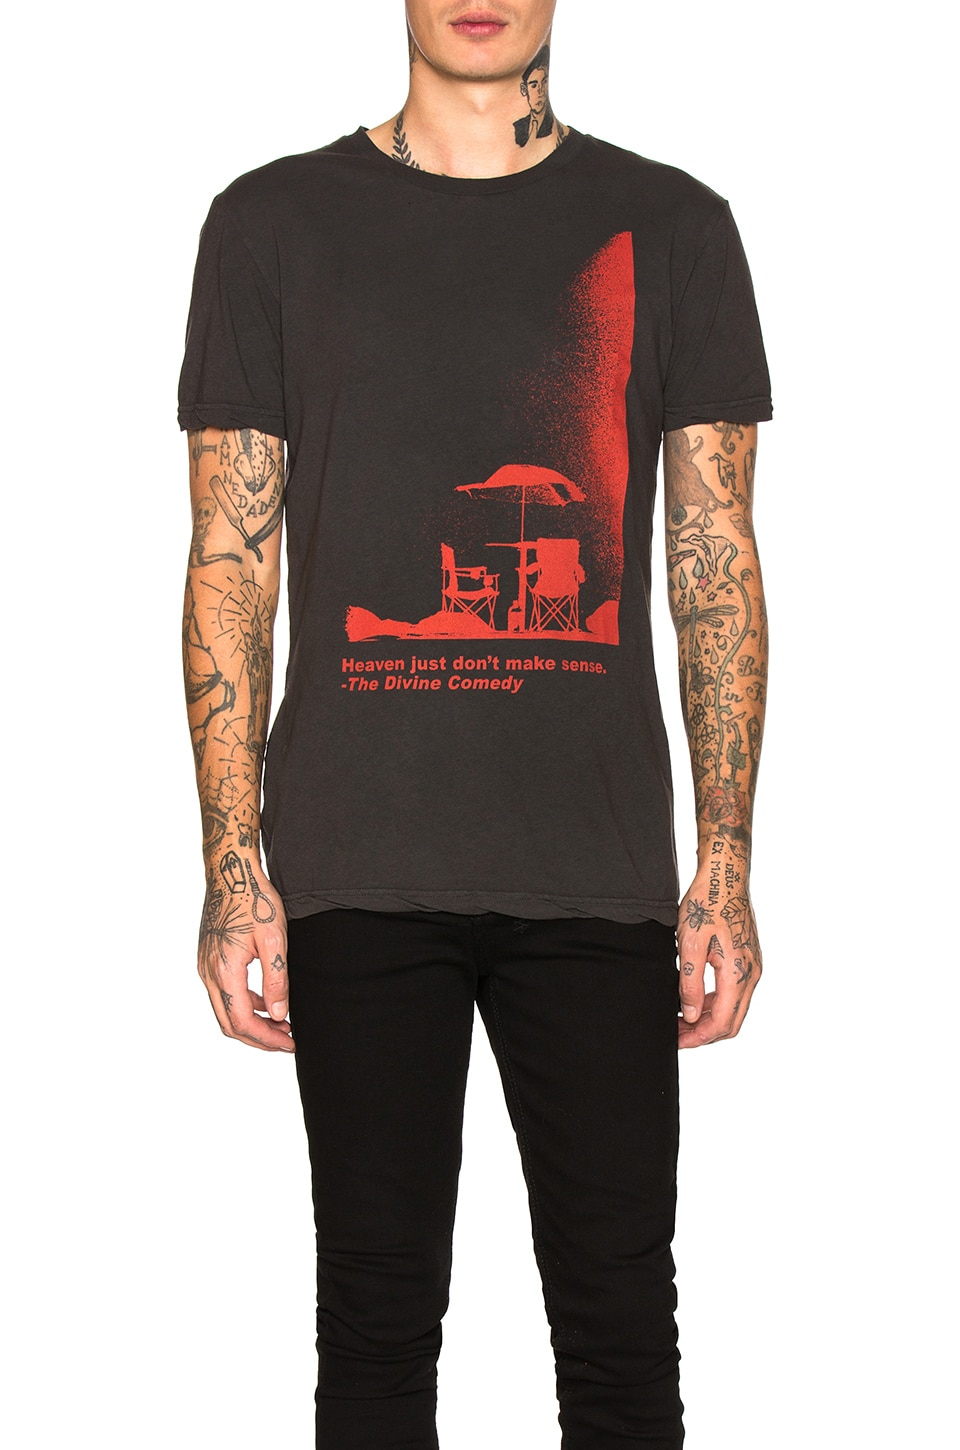 Ksubi Divine Comedy Graphic Tee in Black